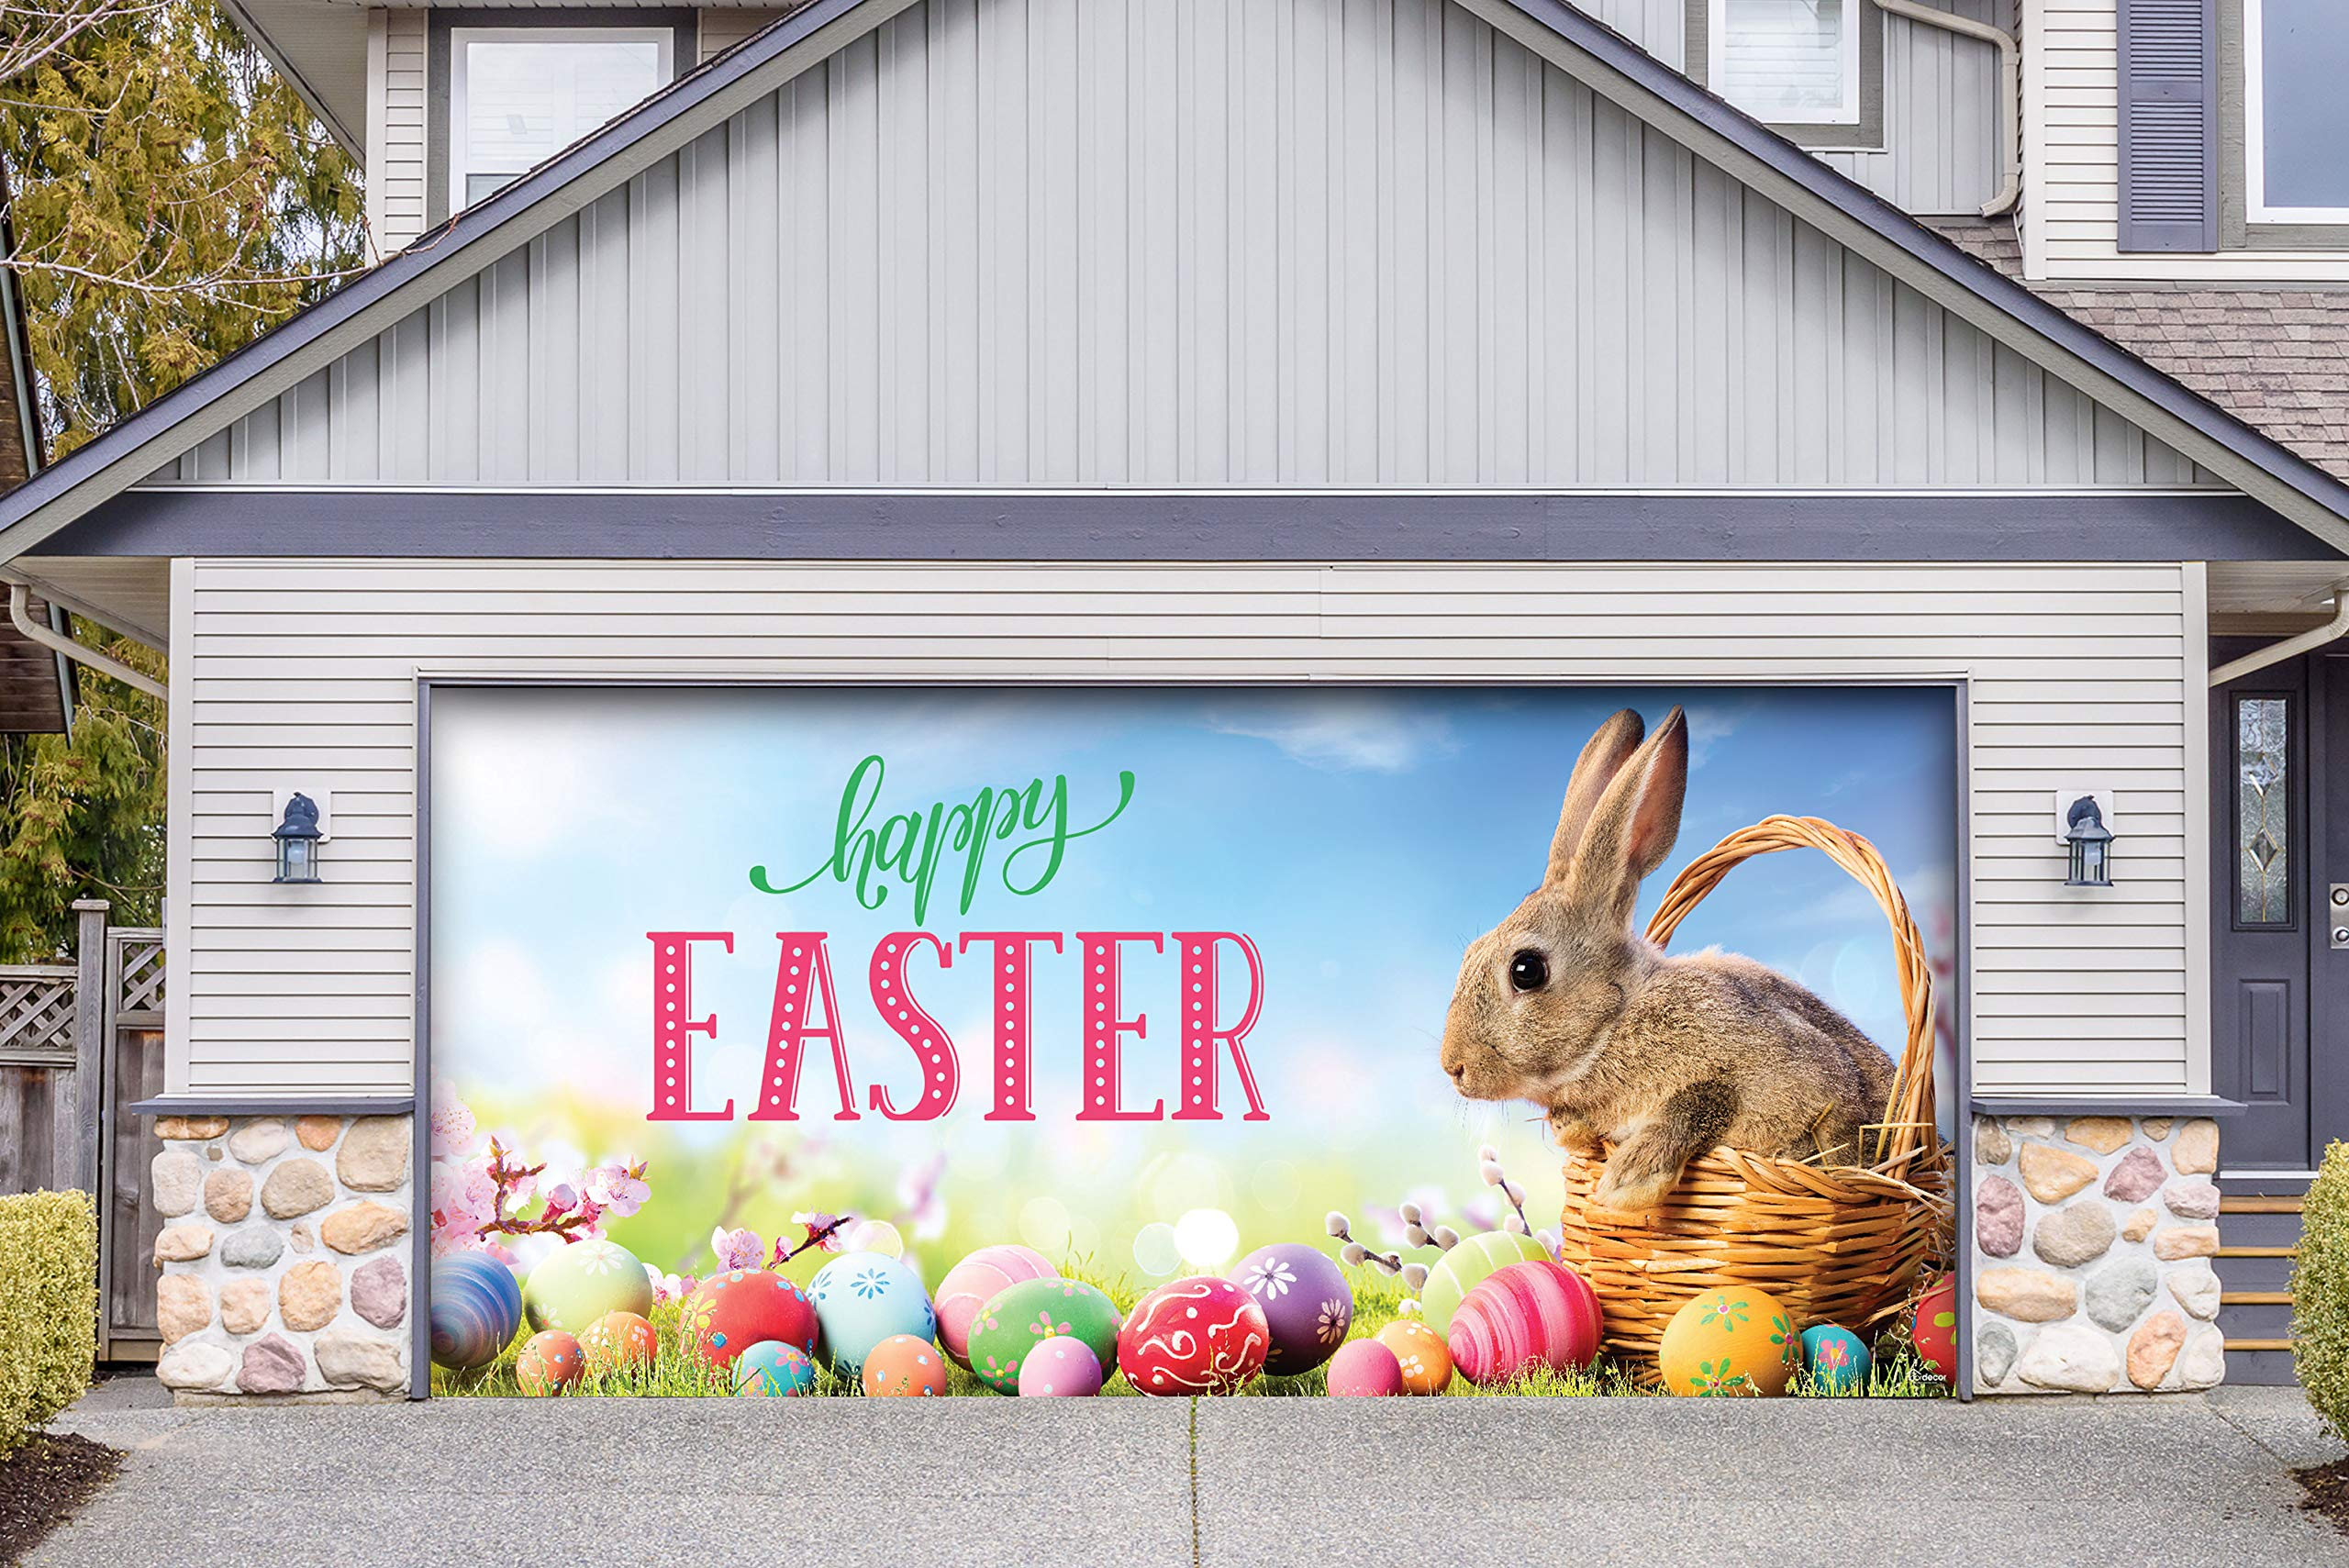 Victory Corps Happy Easter Bunny Basket - Holiday Garage Door Banner Mural Sign Décor 7'x 16' Car Garage - The Original Holiday Garage Door Banner Decor